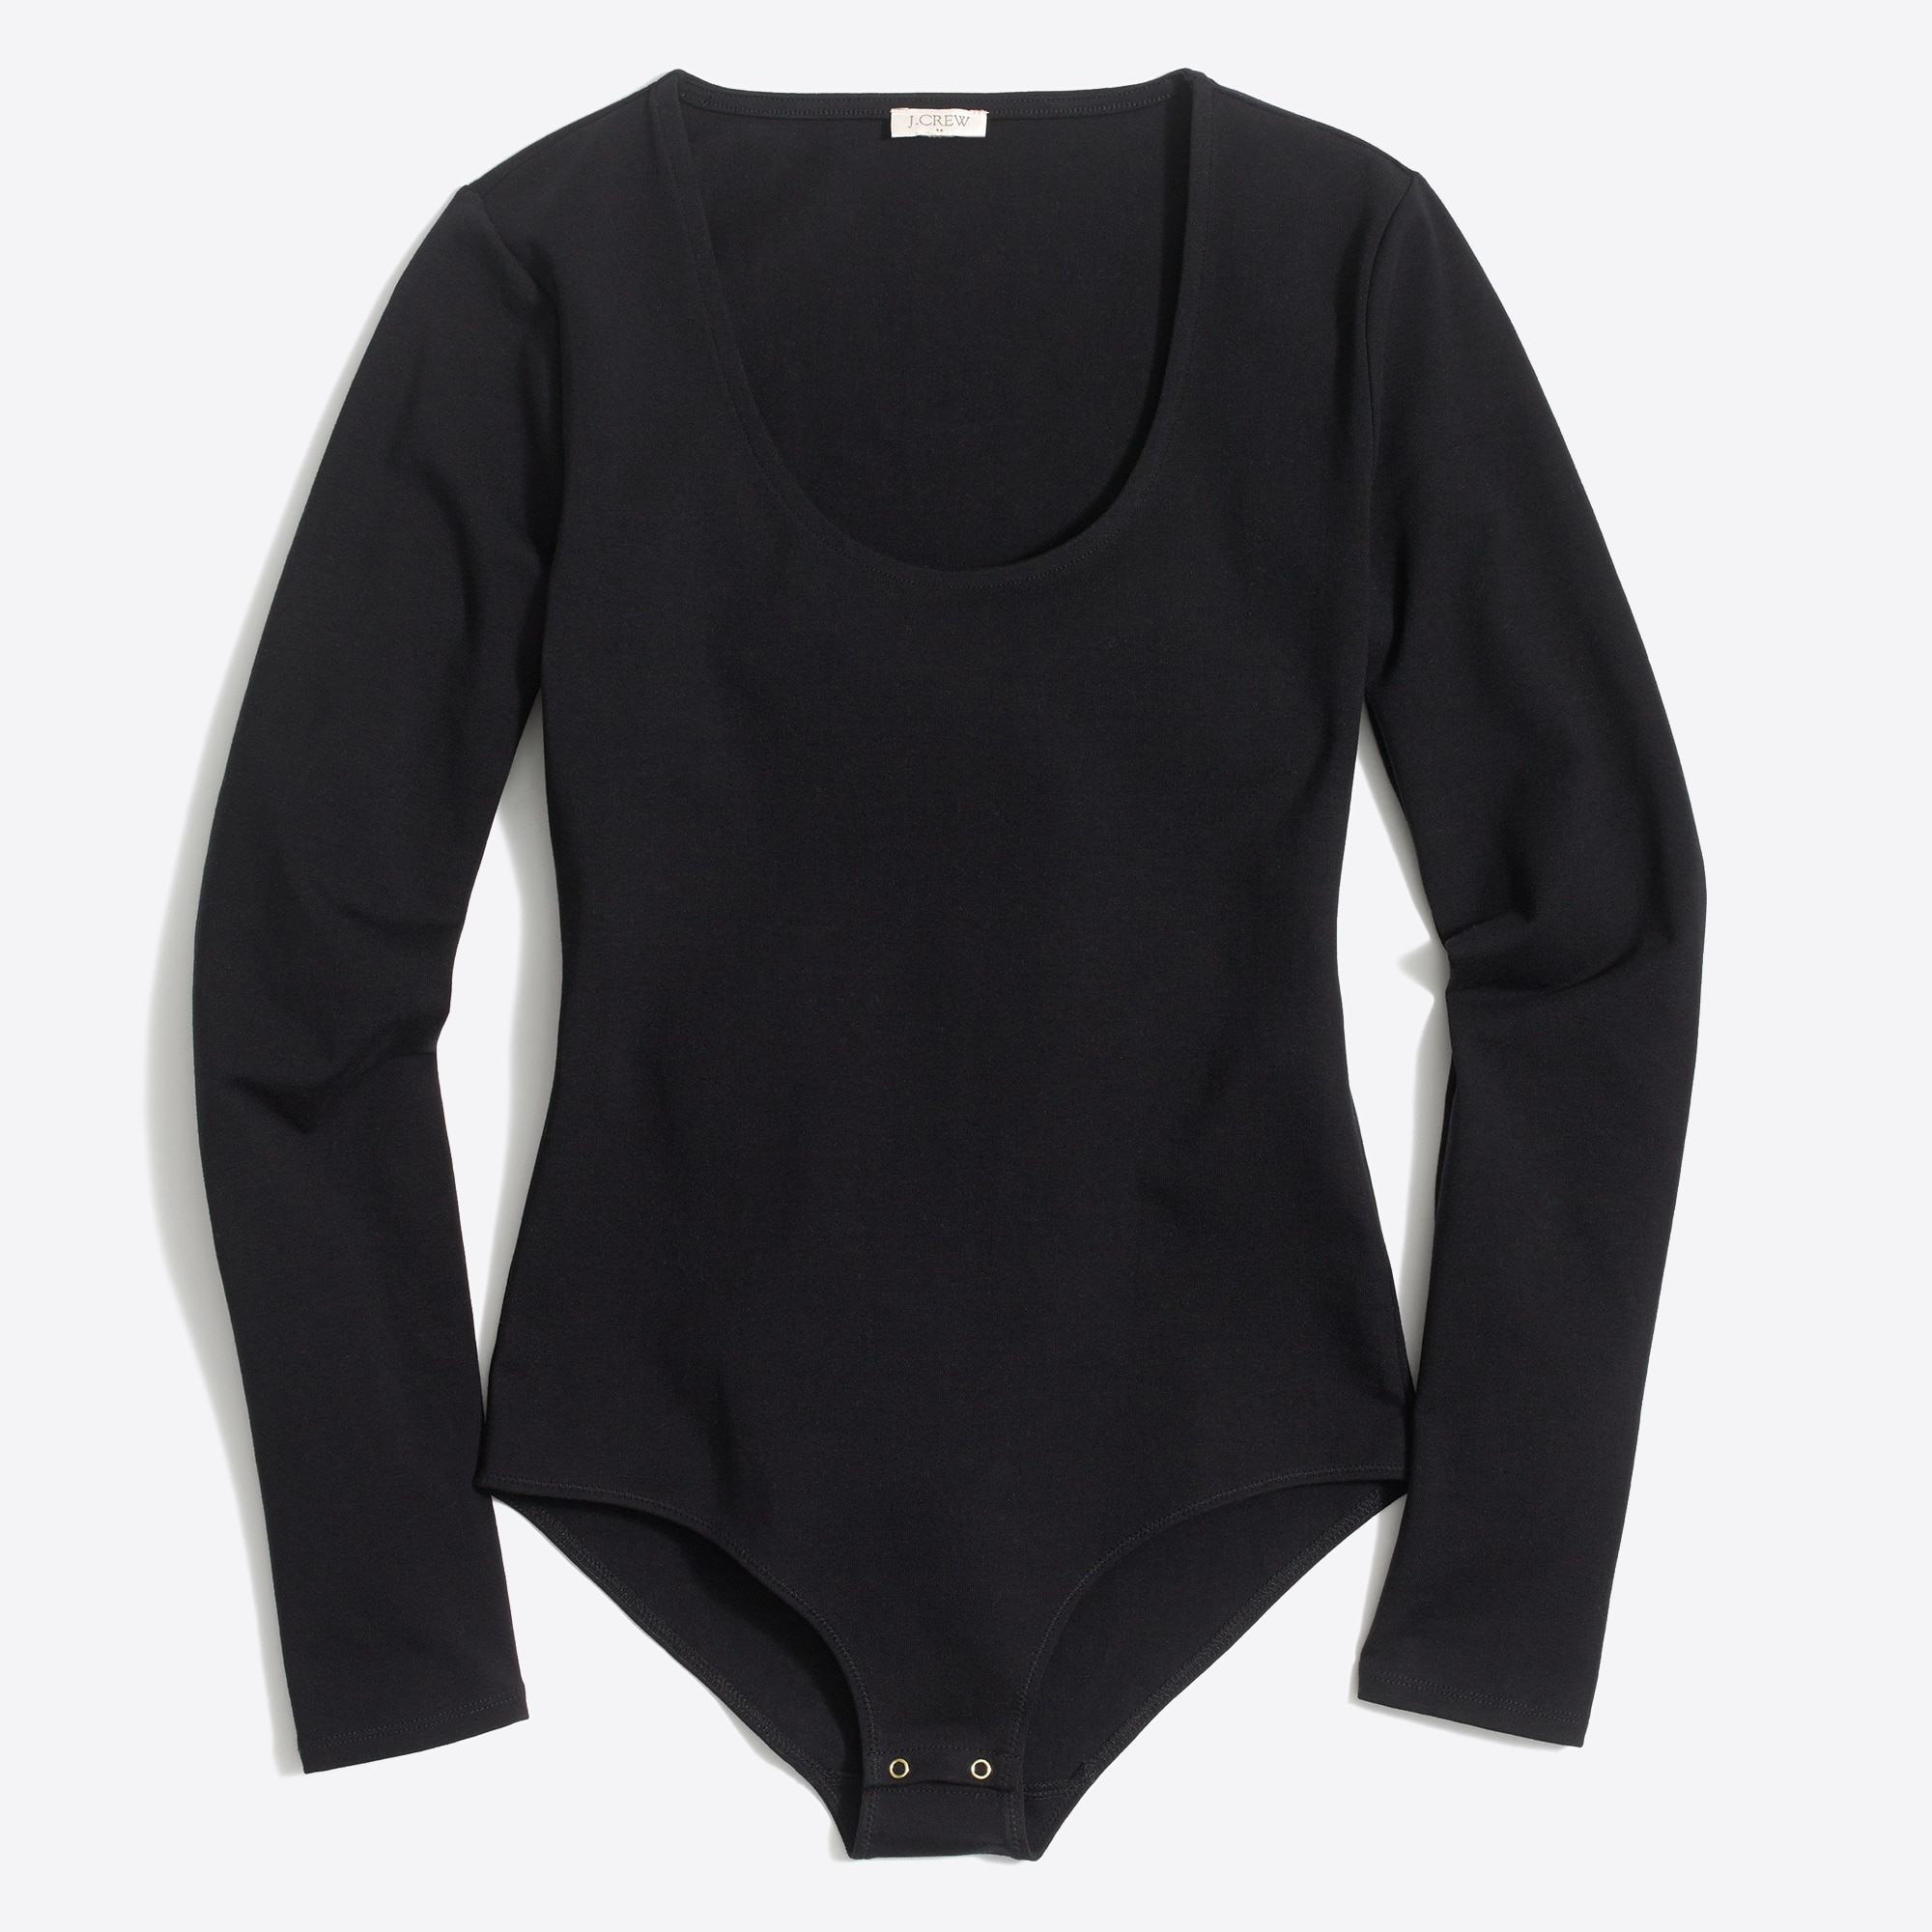 Image 2 for Long-sleeve bodysuit